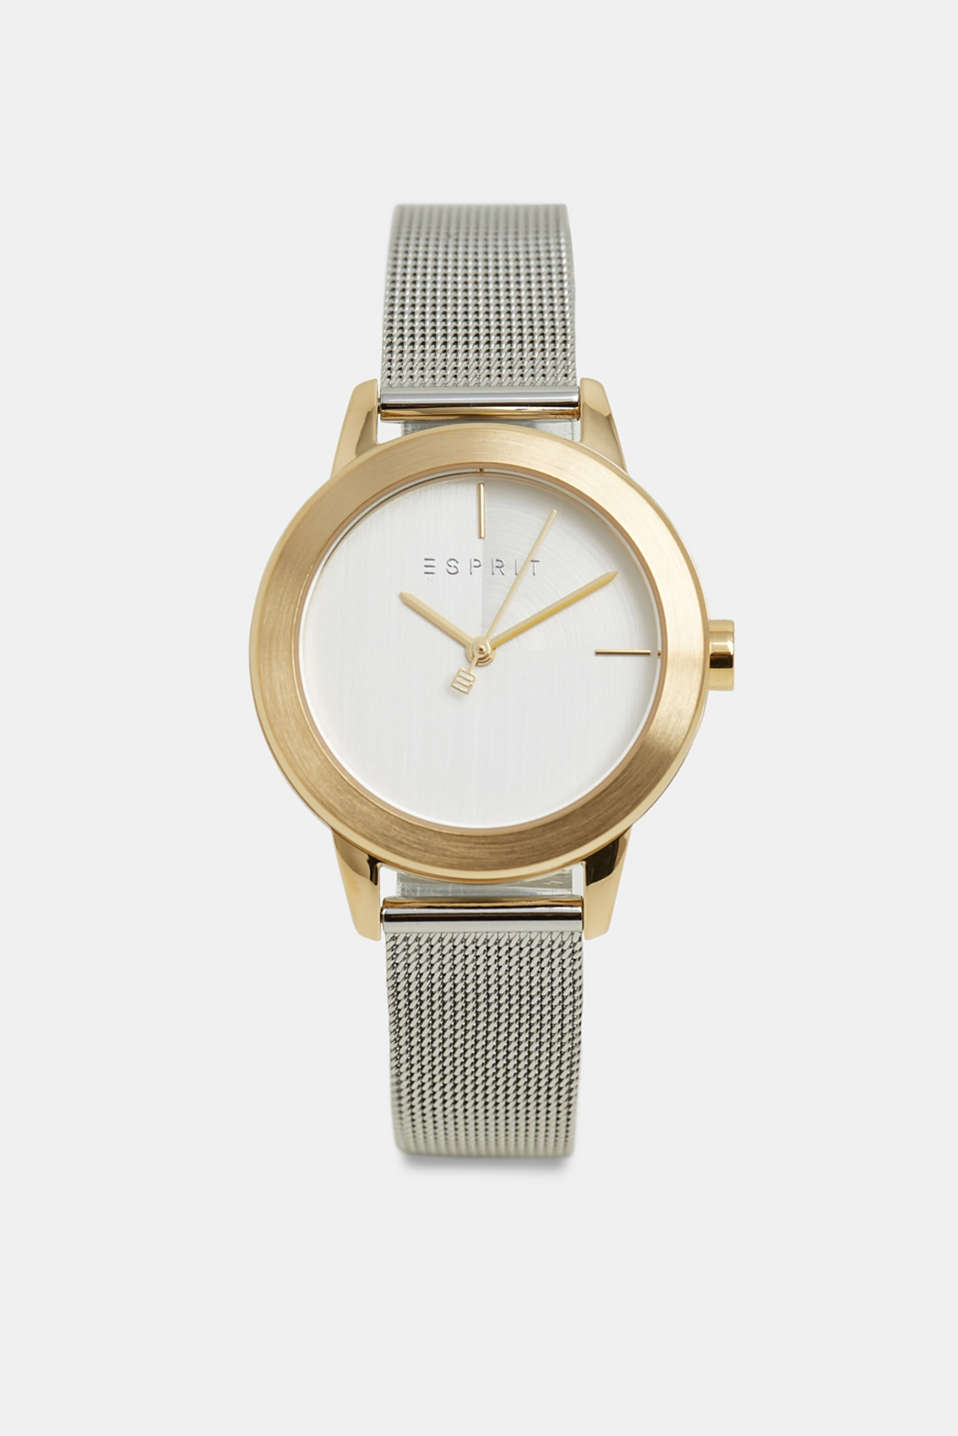 Esprit - Stainless steel watch with a mesh strap